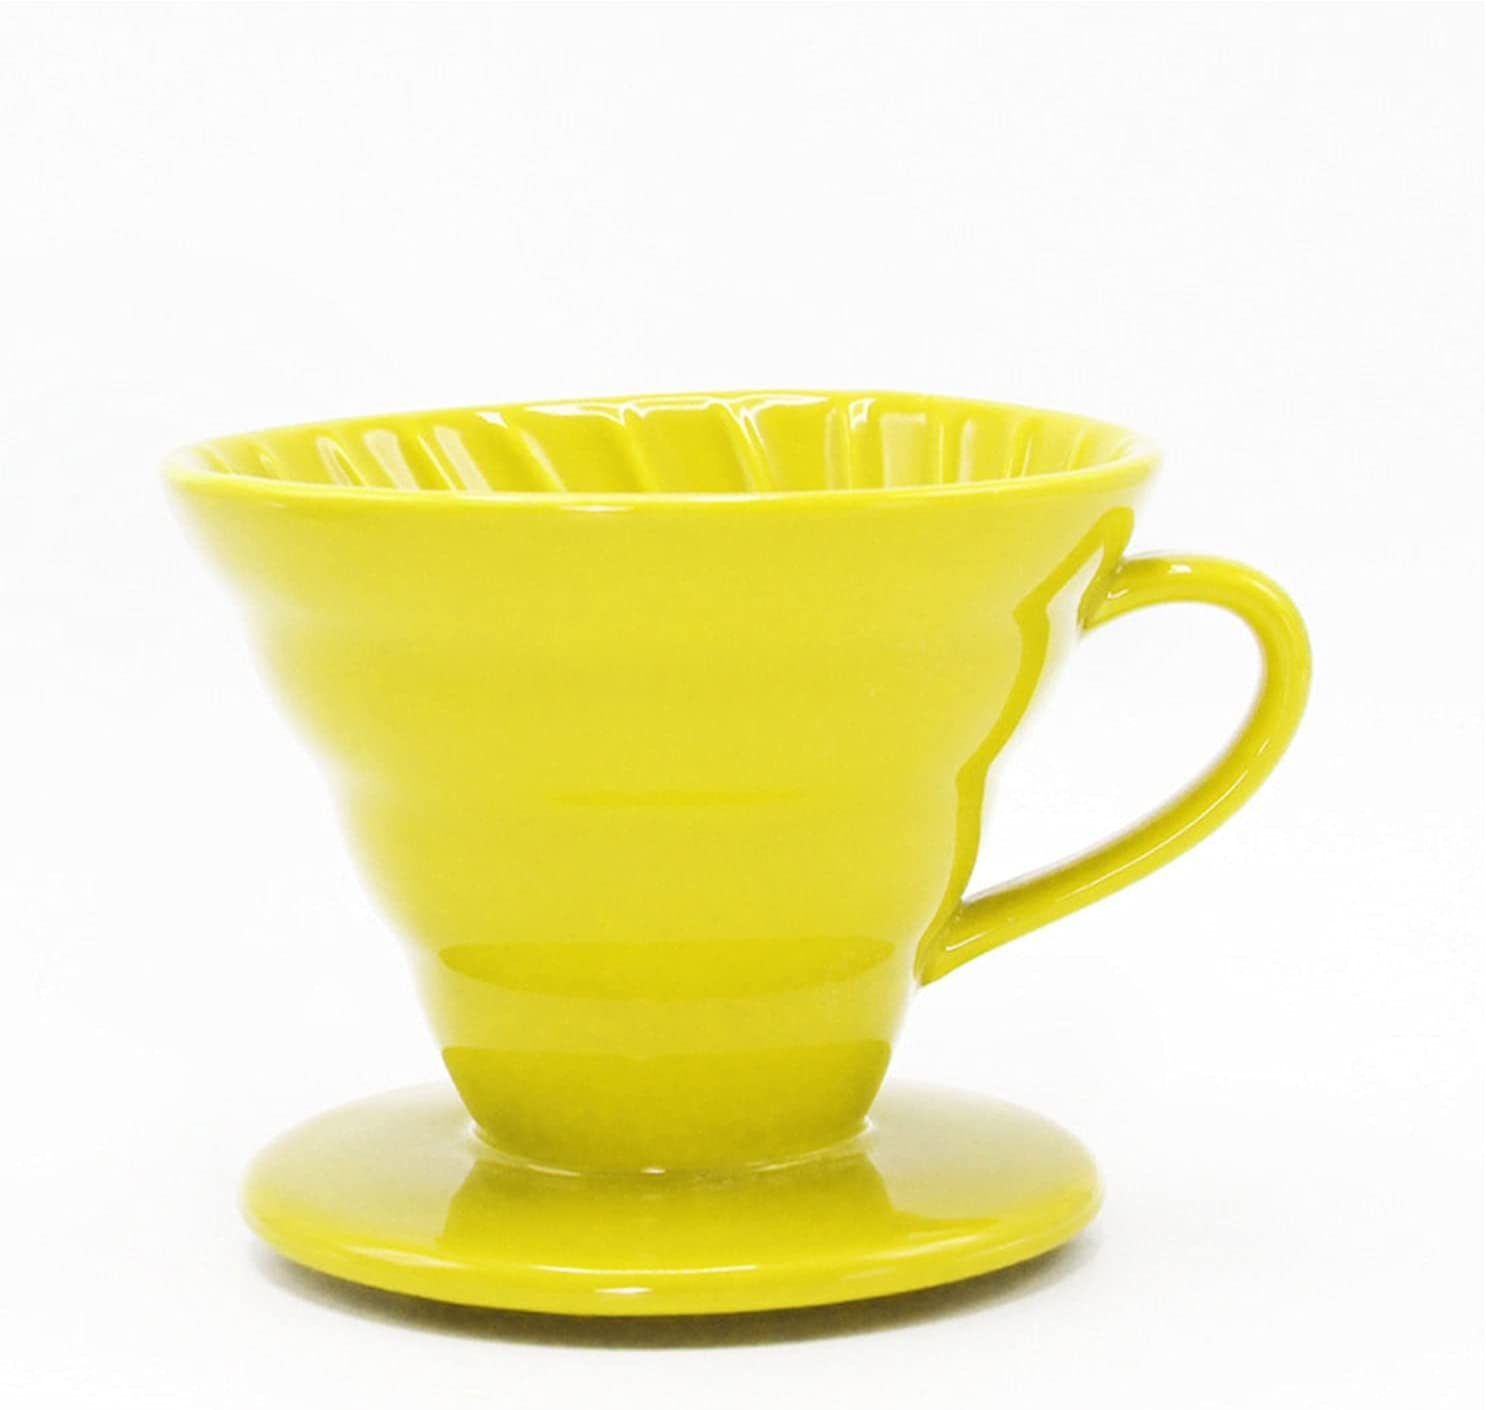 Reusable supreme Coffee Filters Special sale item Pour Over Cone Makers Spi Ceramic